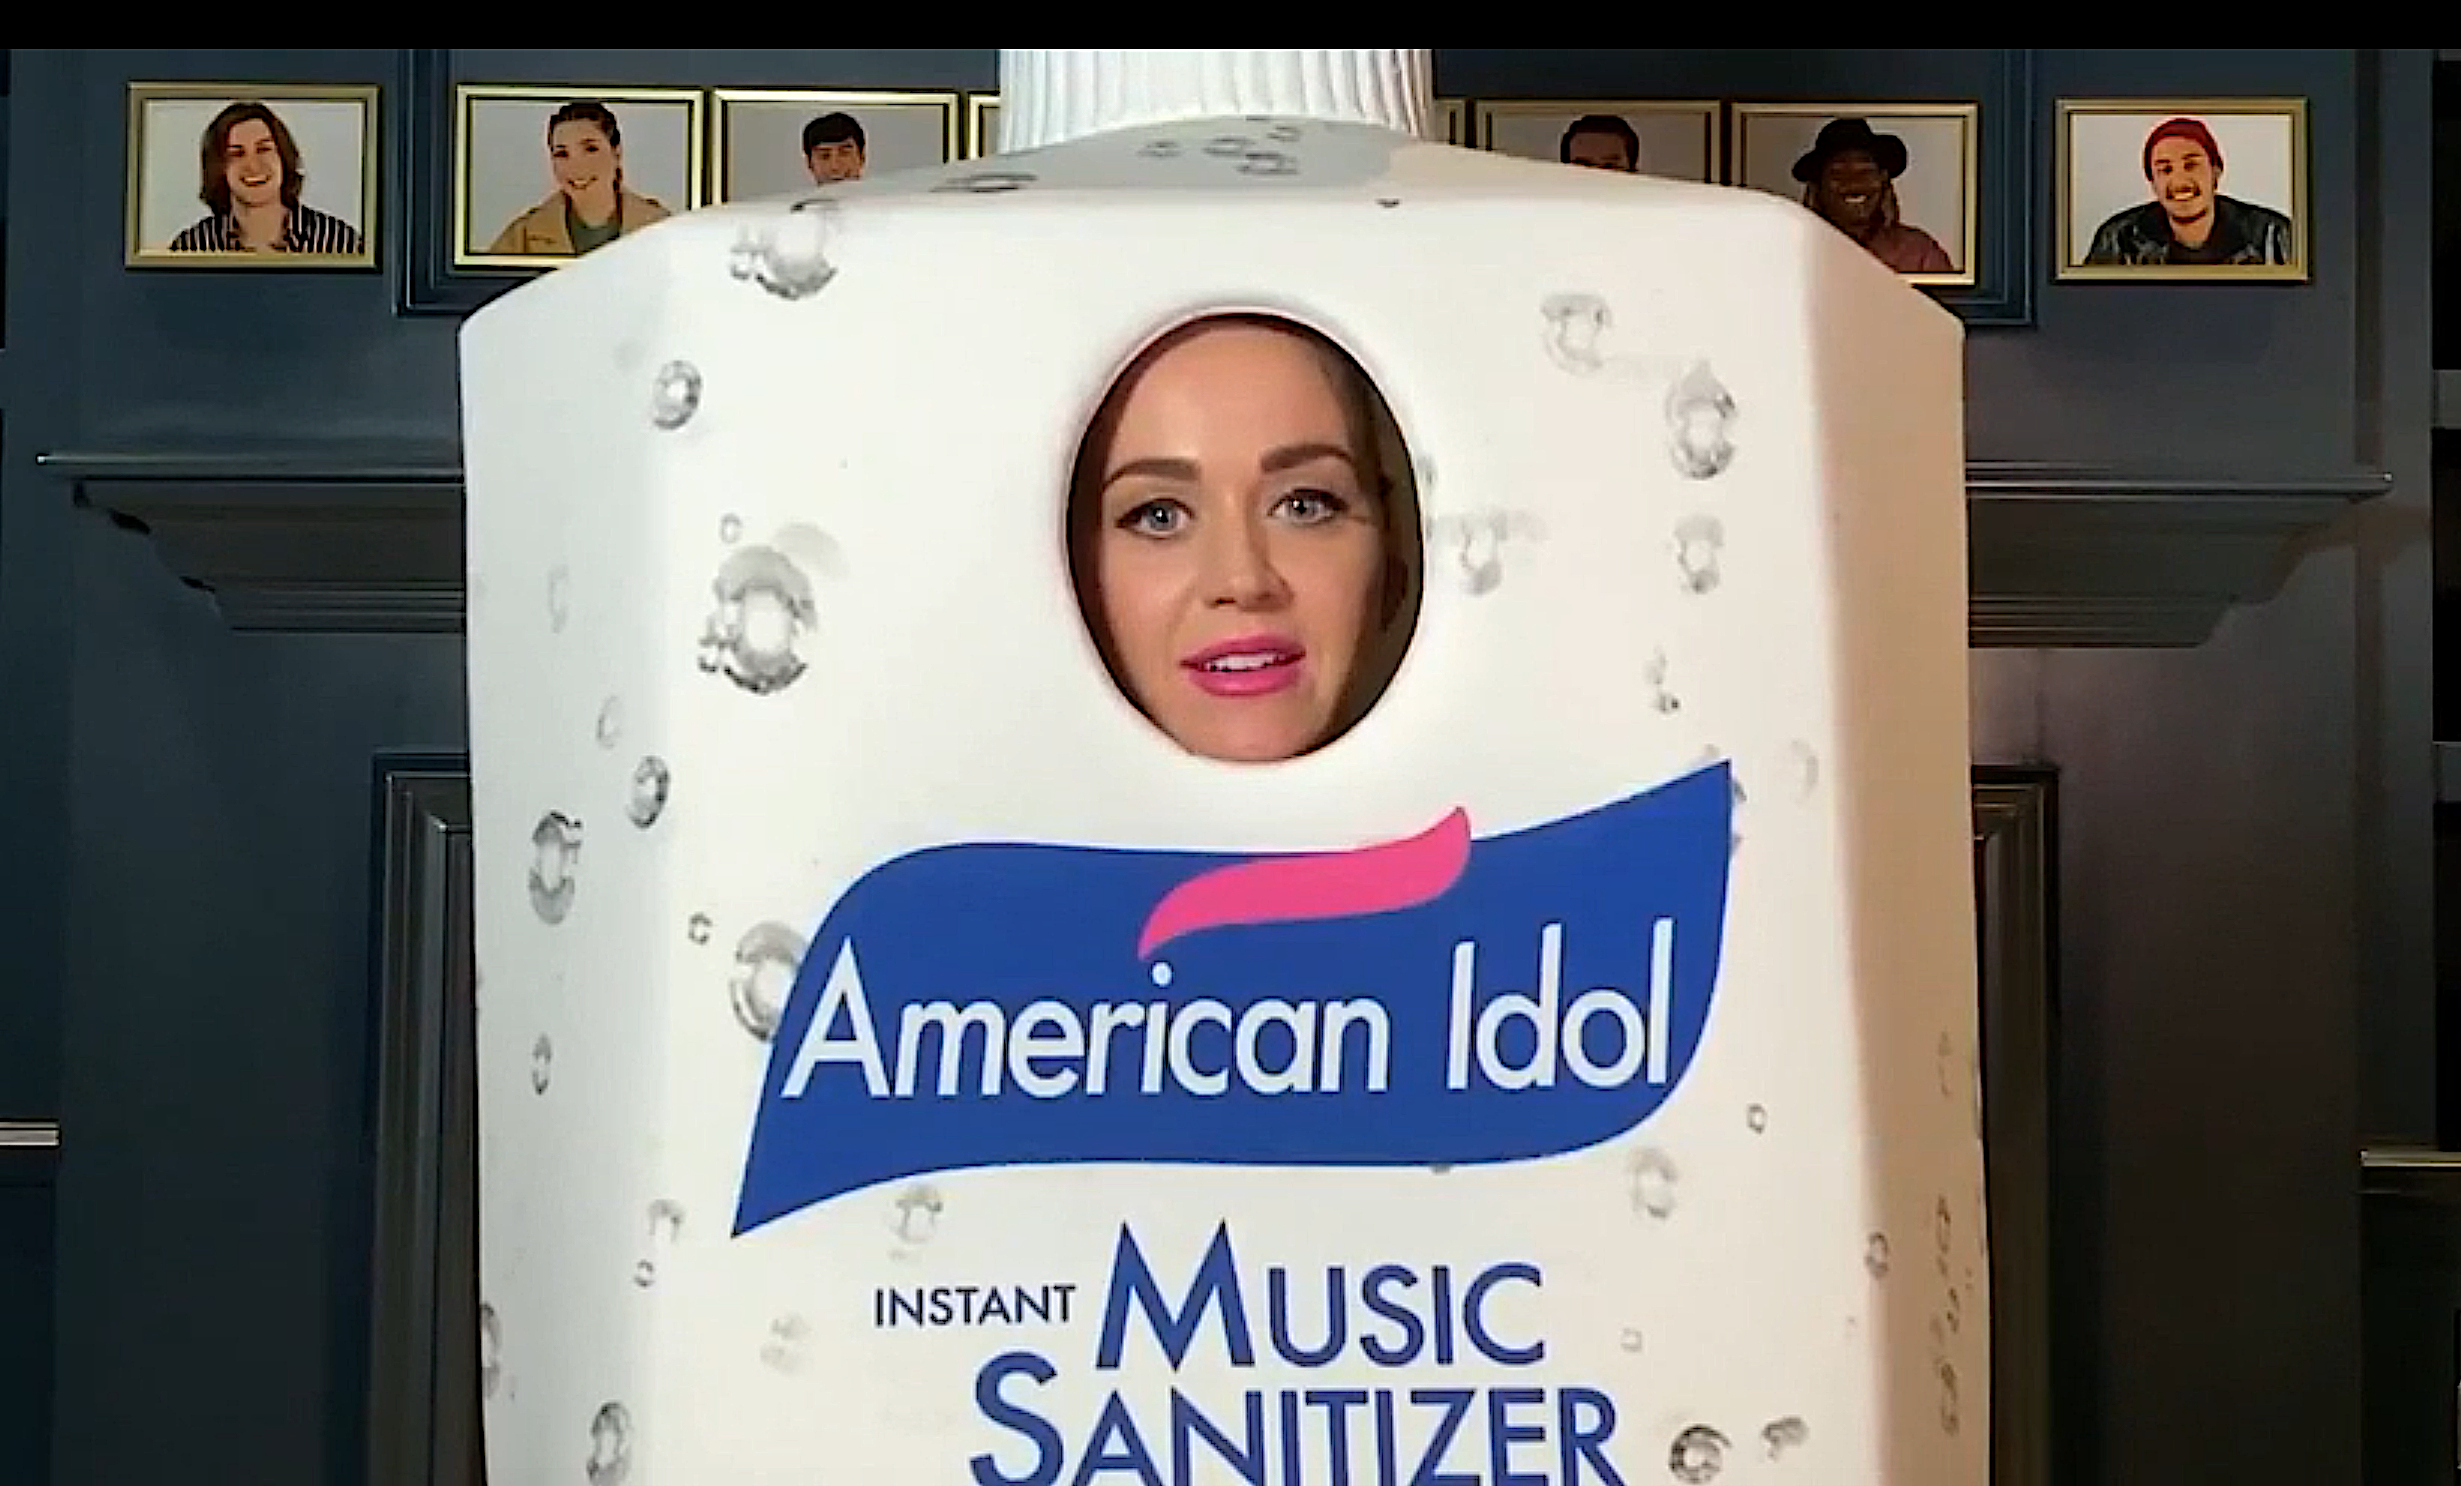 Katy Perry is dressed to impress on 'American Idol.' (Photo: ABC)